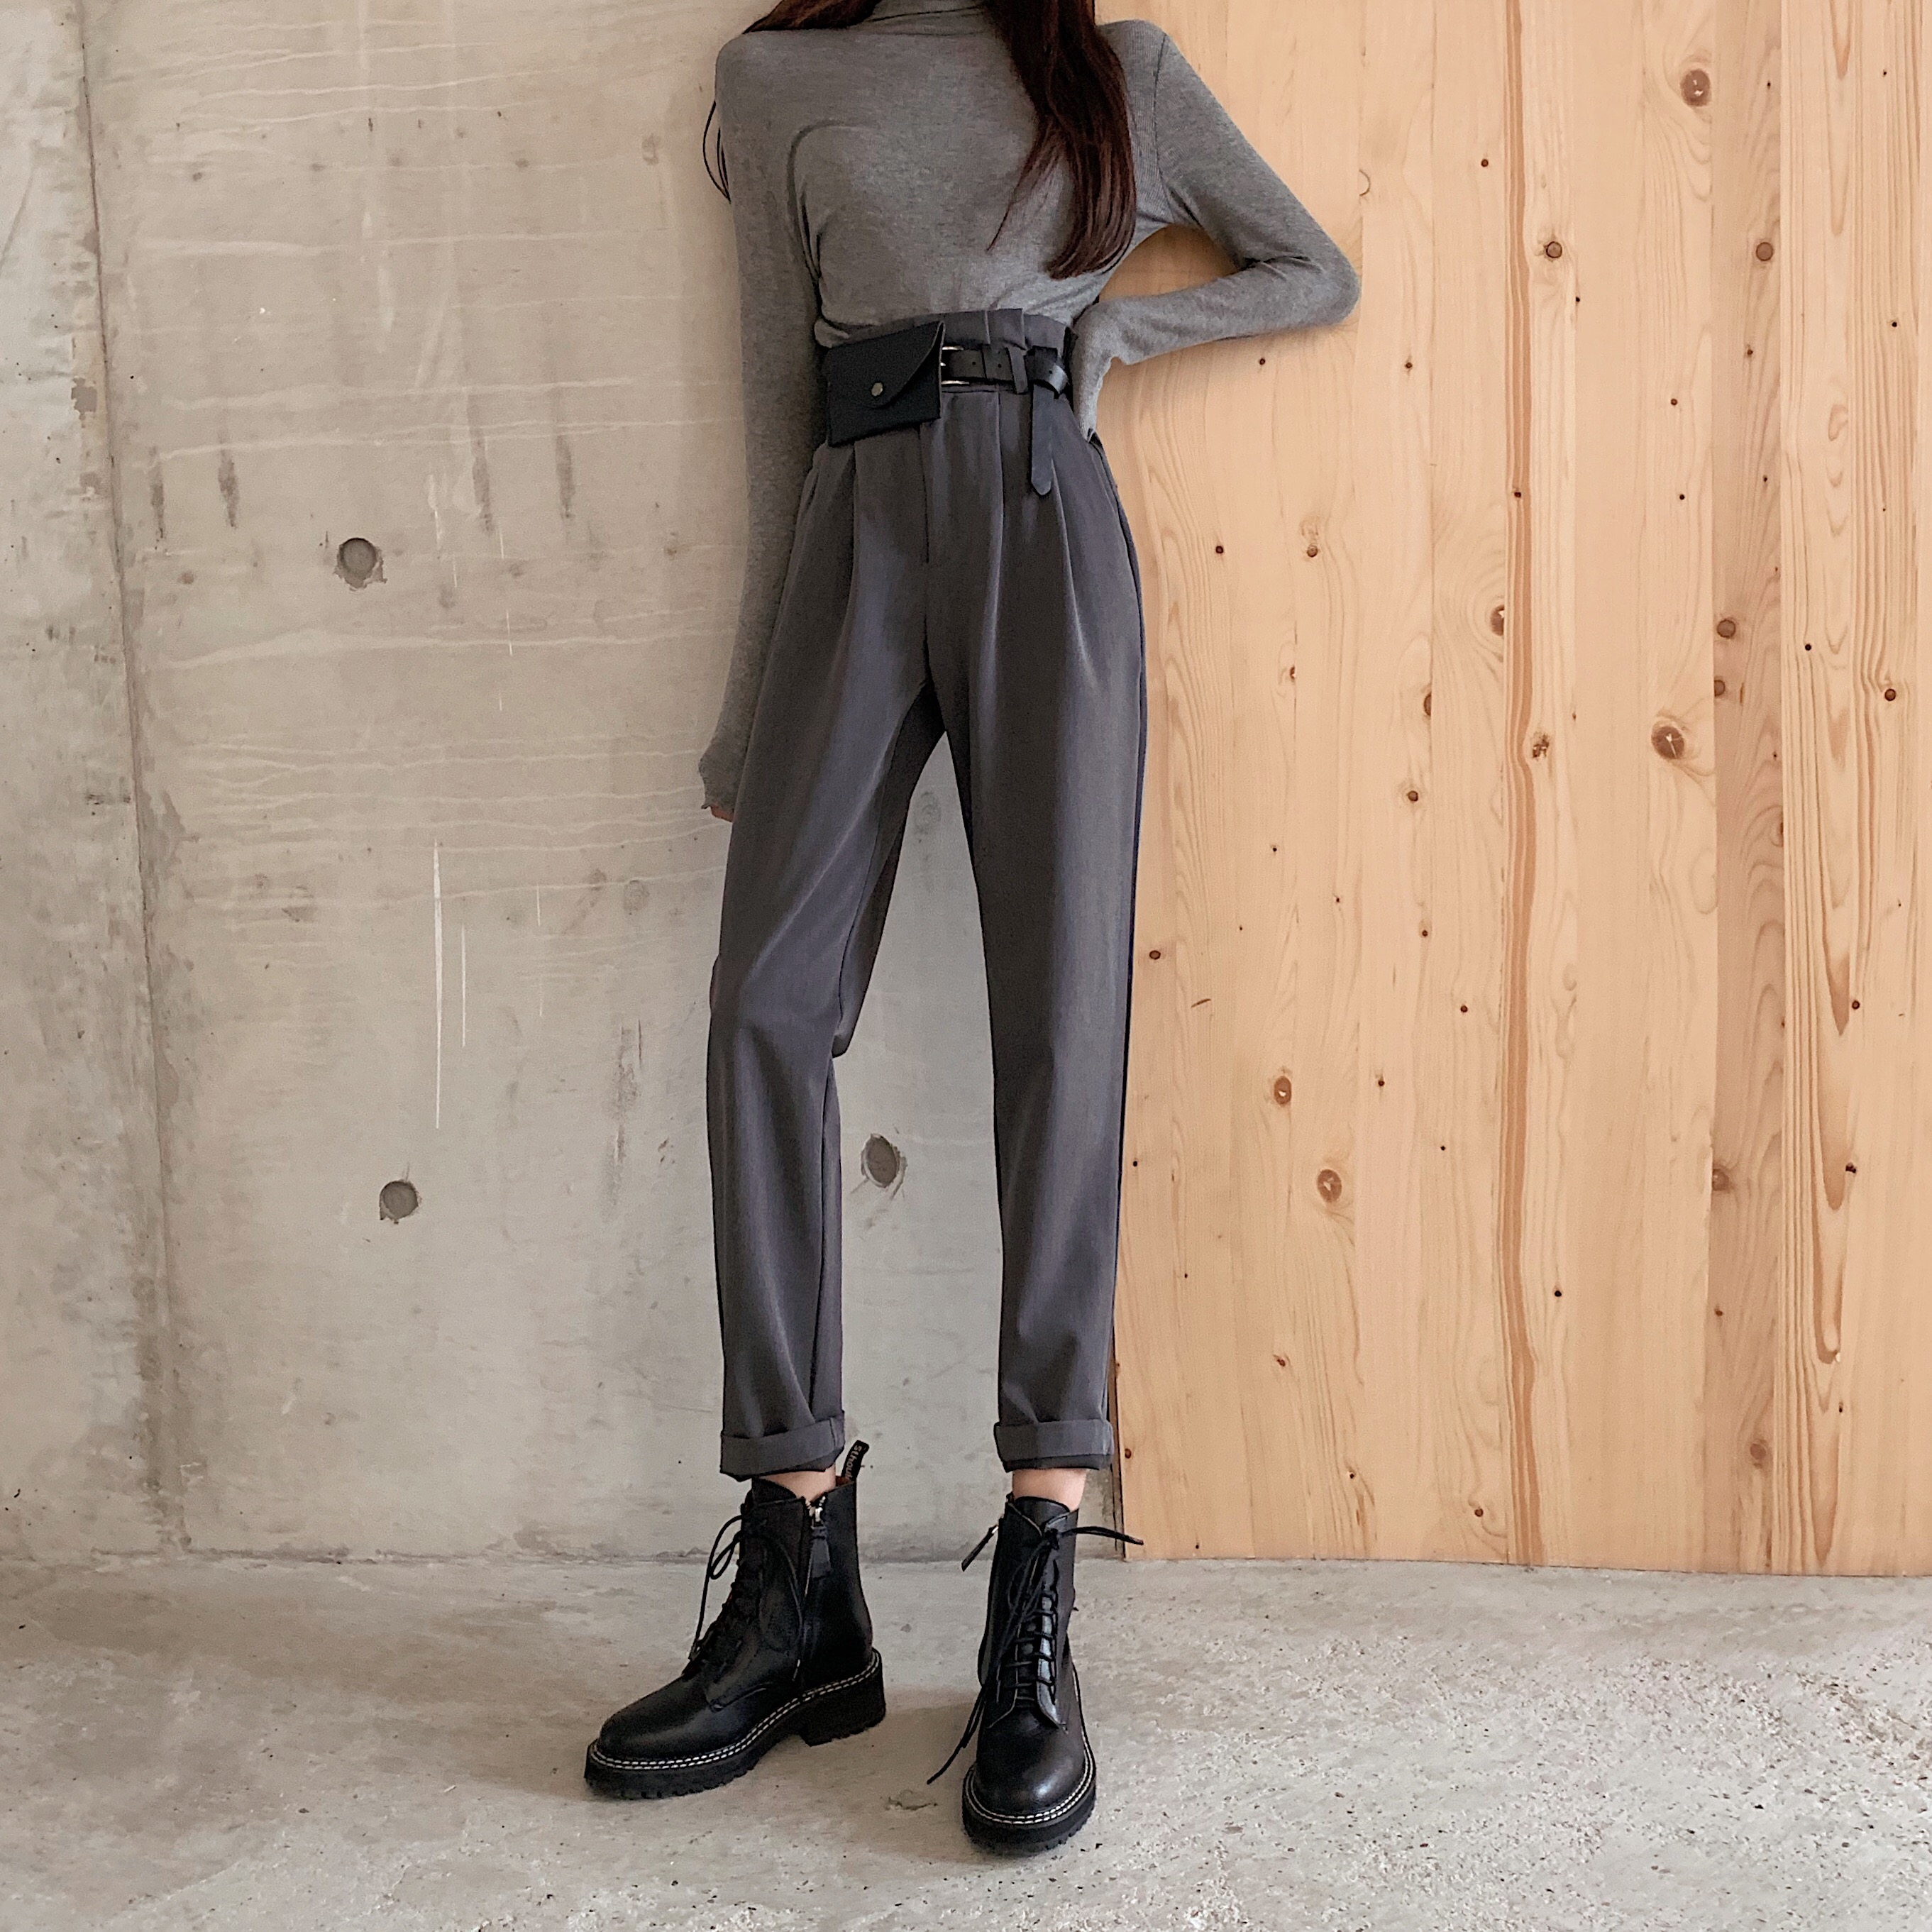 High Waist Harem Pants Elegant Ol Office Straight Trousers Women Black Grey Work Wear Pants Spring Autumn 2019 Vintage Trousers